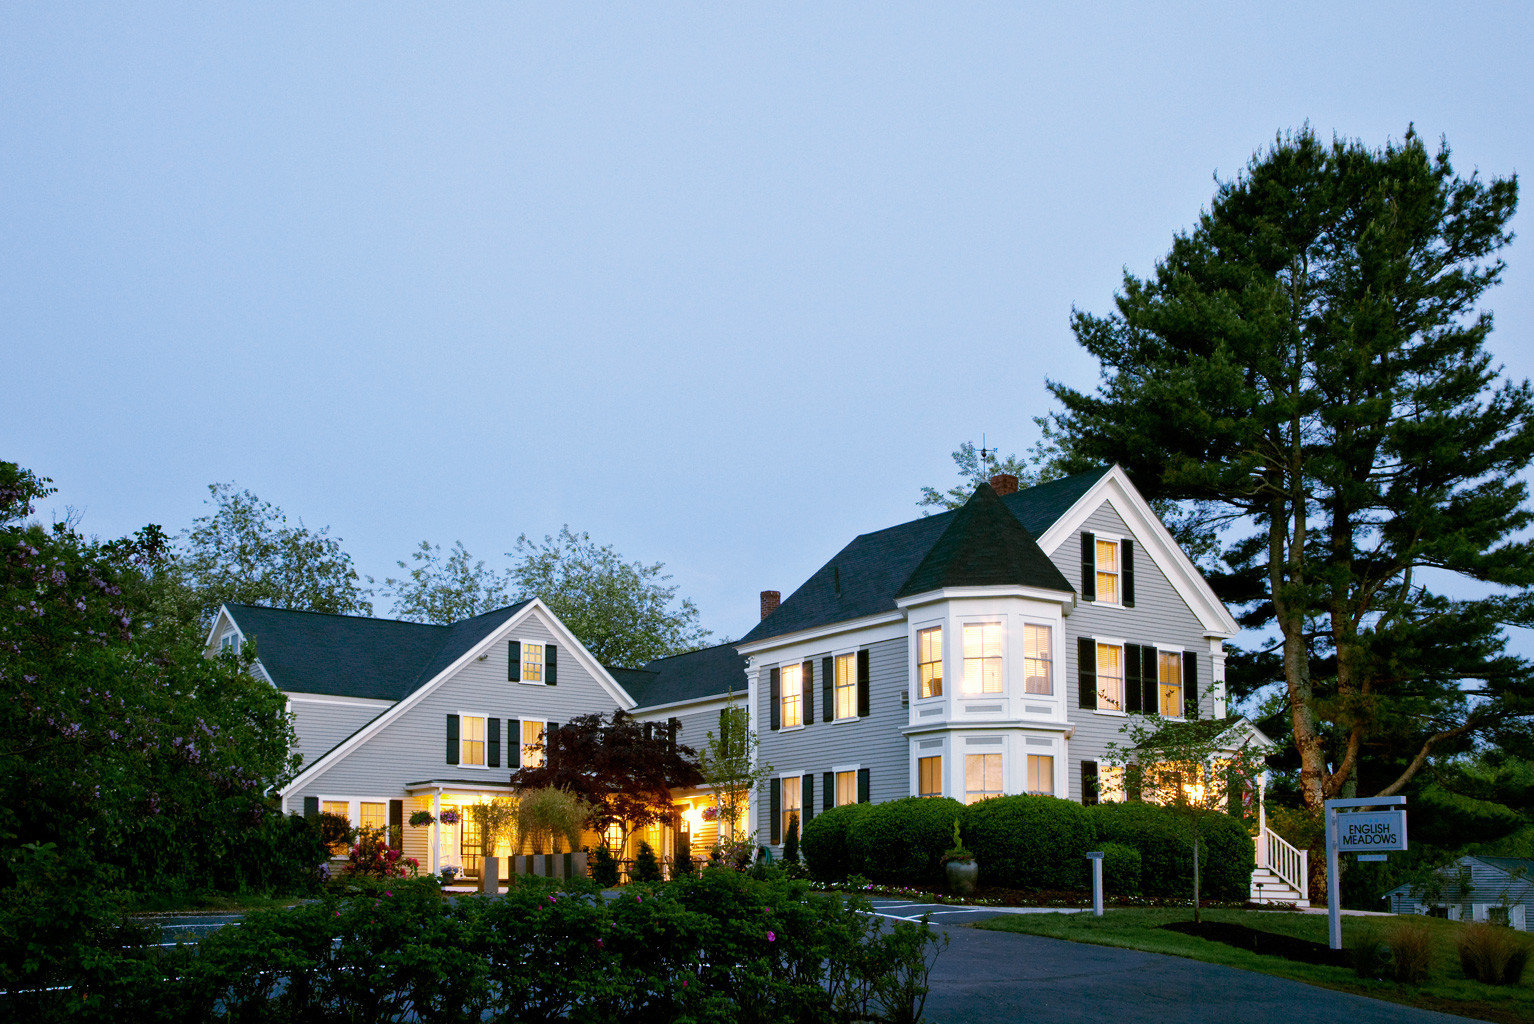 B&B Elegant Exterior Grounds Historic Inn tree sky house home building residential area residential cottage rural area farmhouse mansion château manor house Town sign